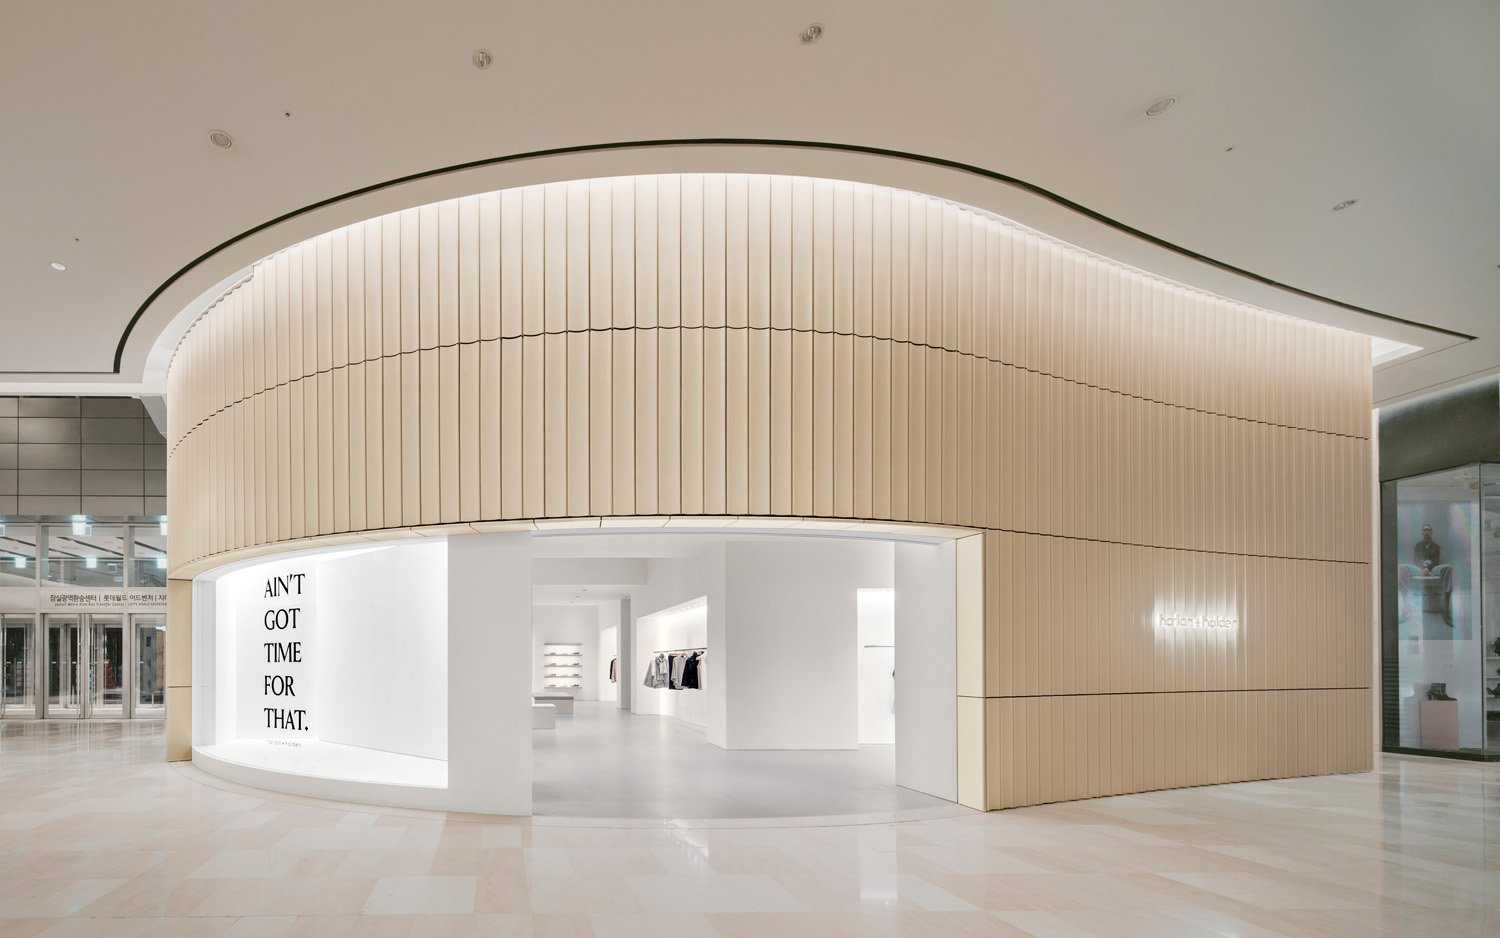 © Simon Menges, courtesy David Chipperfield Architects Shanghai The harlan + holden clothing store at the Lotte World Mall features a curved façade highlighted by a ceiling light groove. The Korean brand eschews frantic shopping in favor of an agreeable shopping experience.